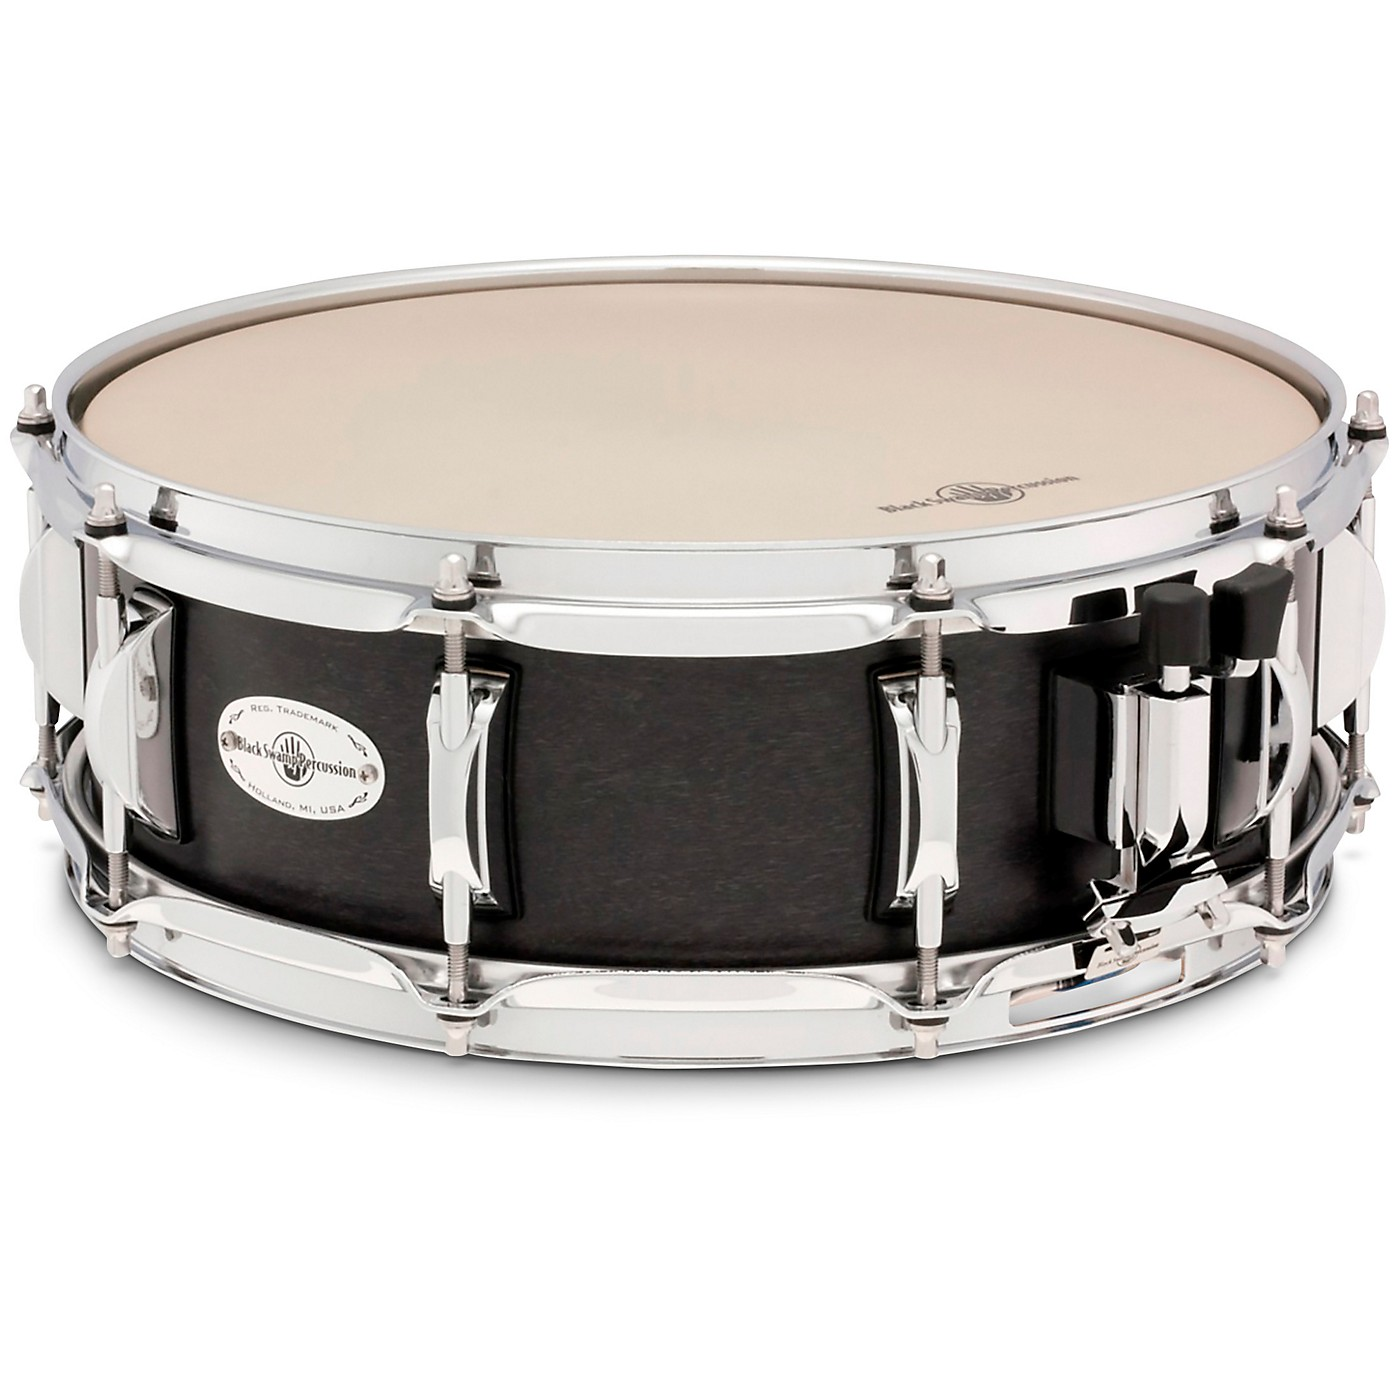 Black Swamp Percussion Concert Maple Shell Snare Drum thumbnail